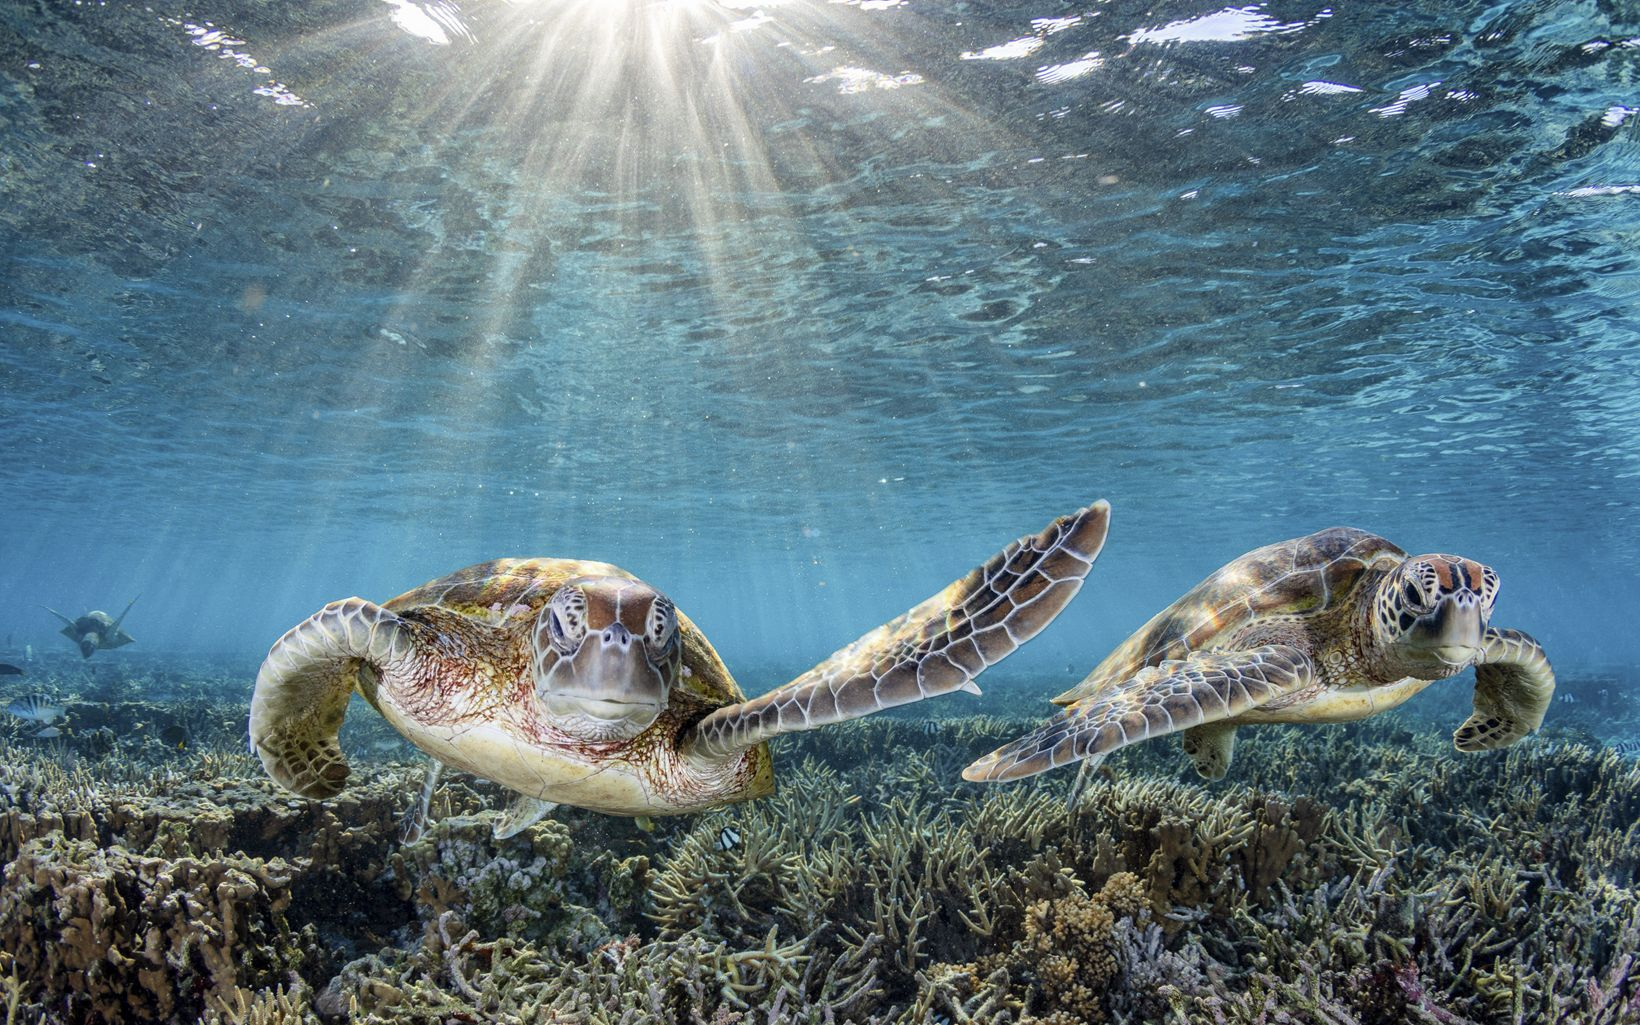 Two endangered Green Sea Turtles slapping some fins as they swim through the coral gardens on Lady Elliot Island.